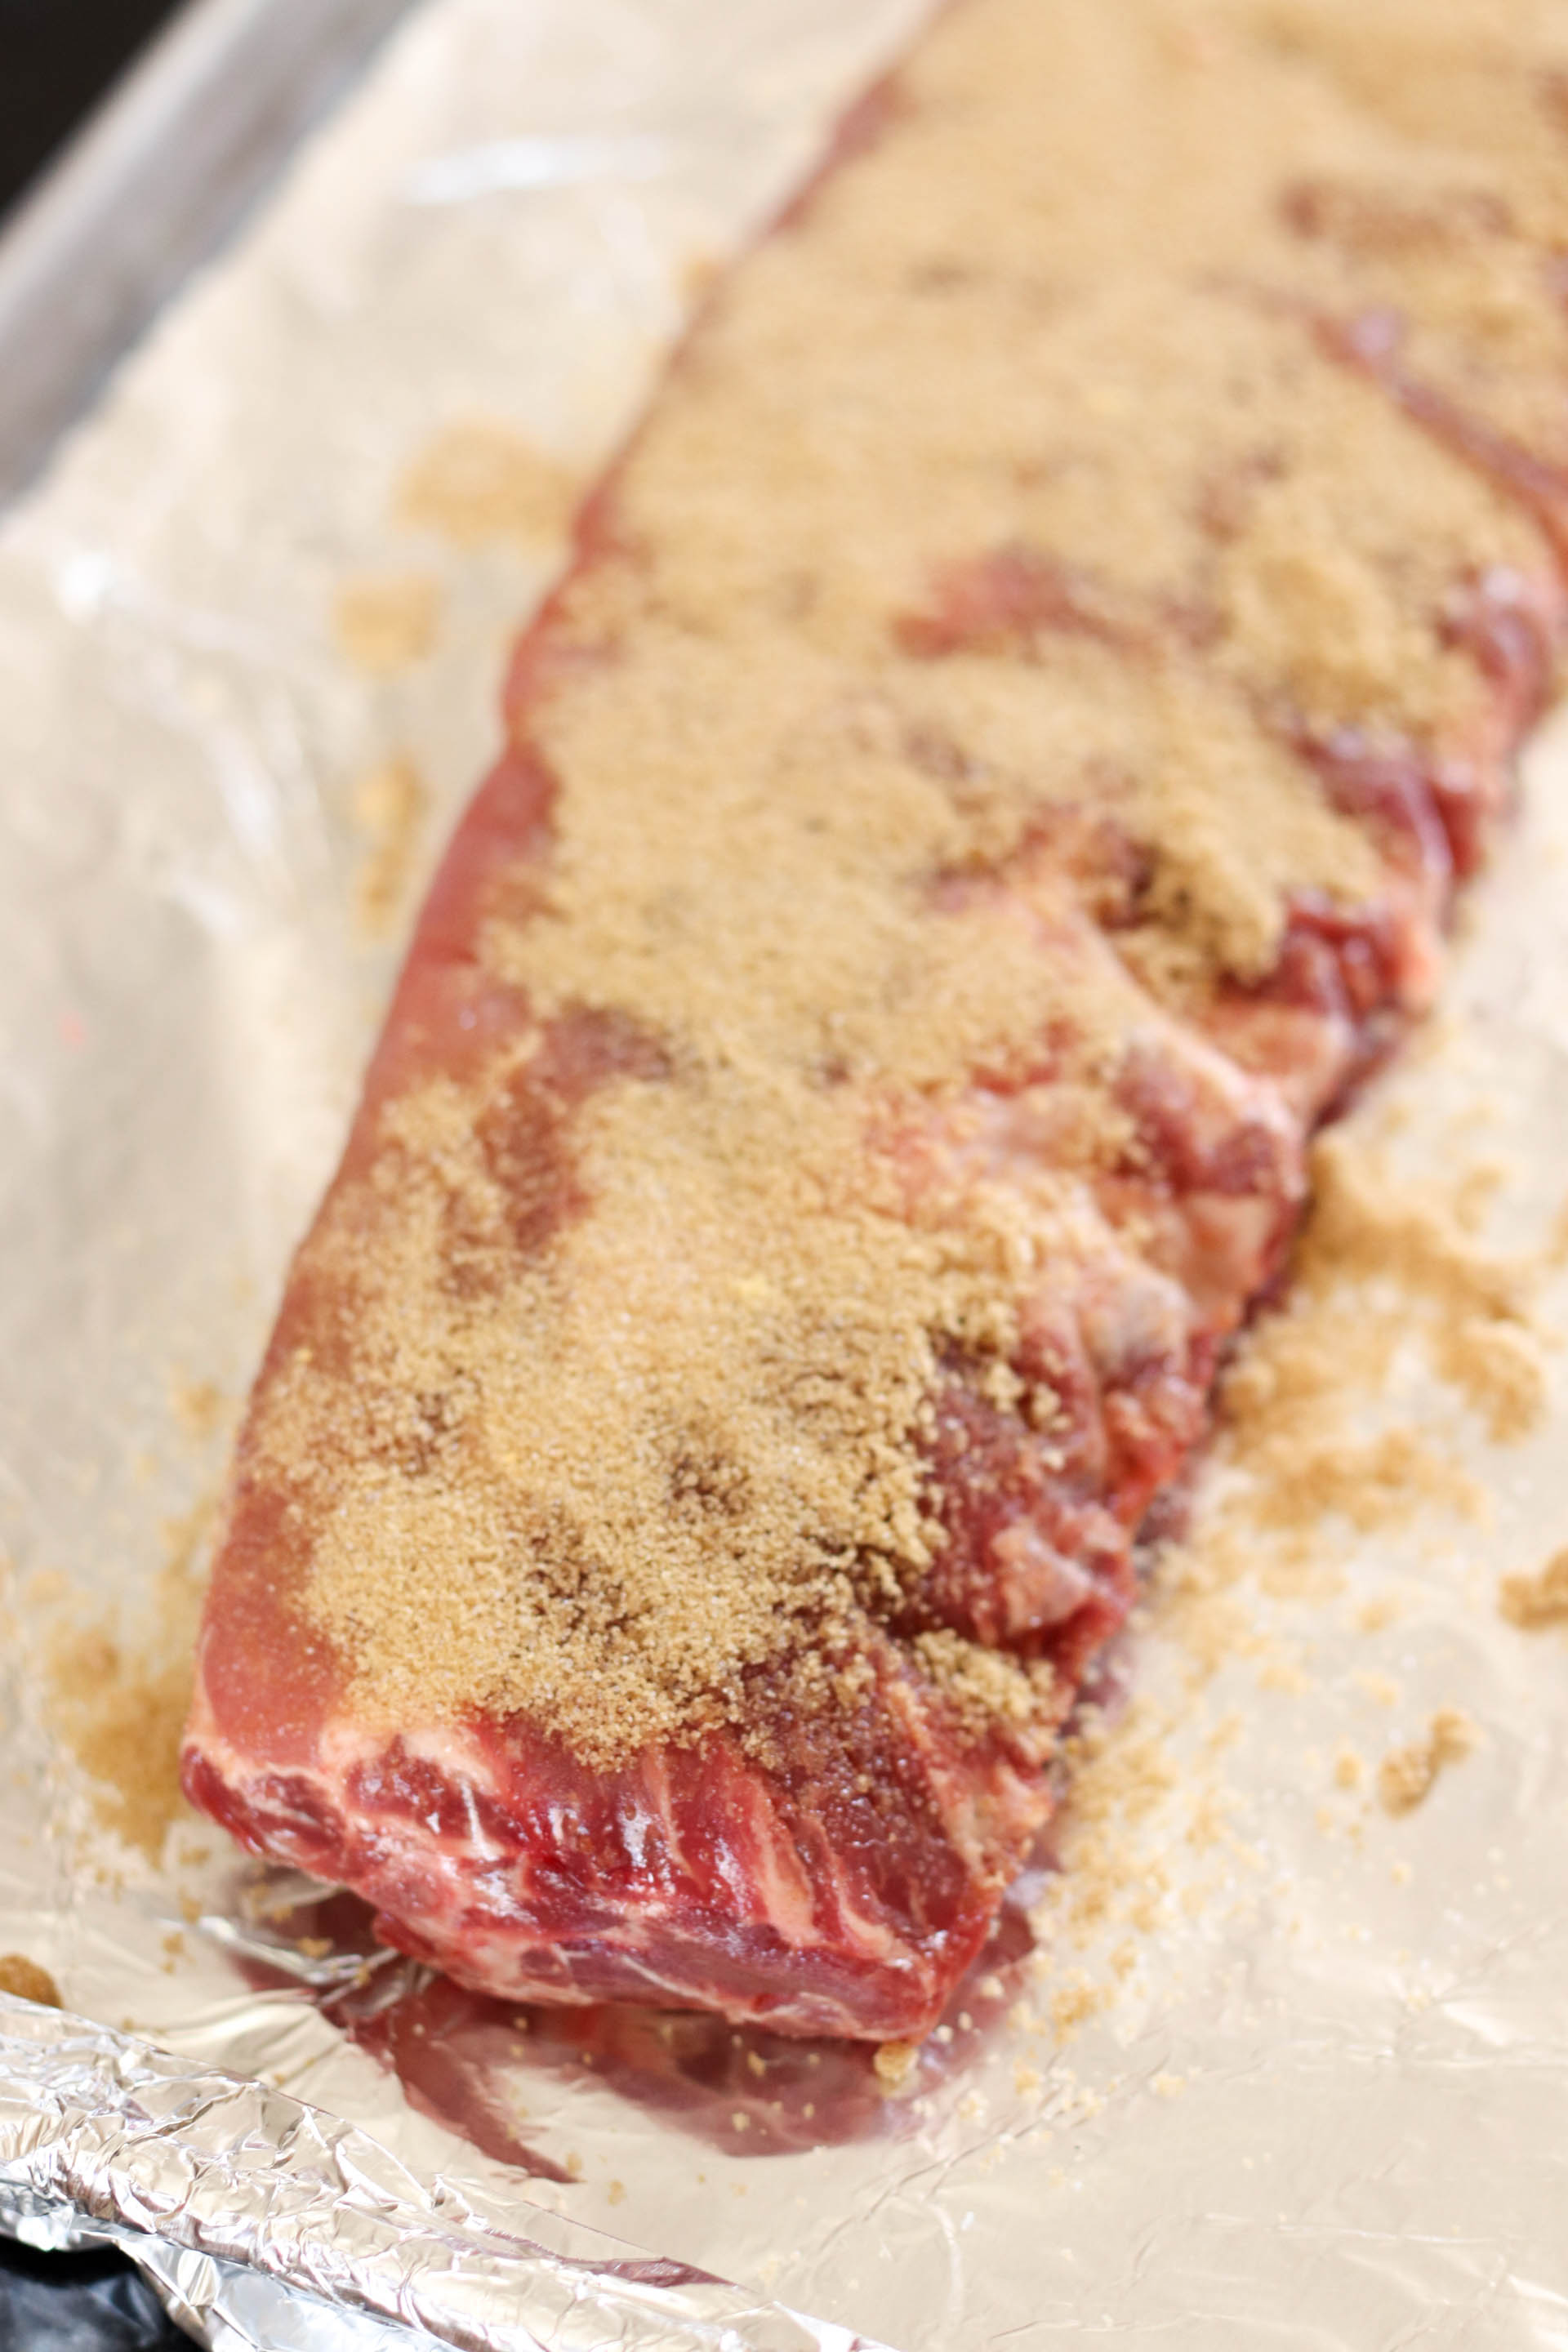 Uncooked ribs with Brown sugar rub all over them